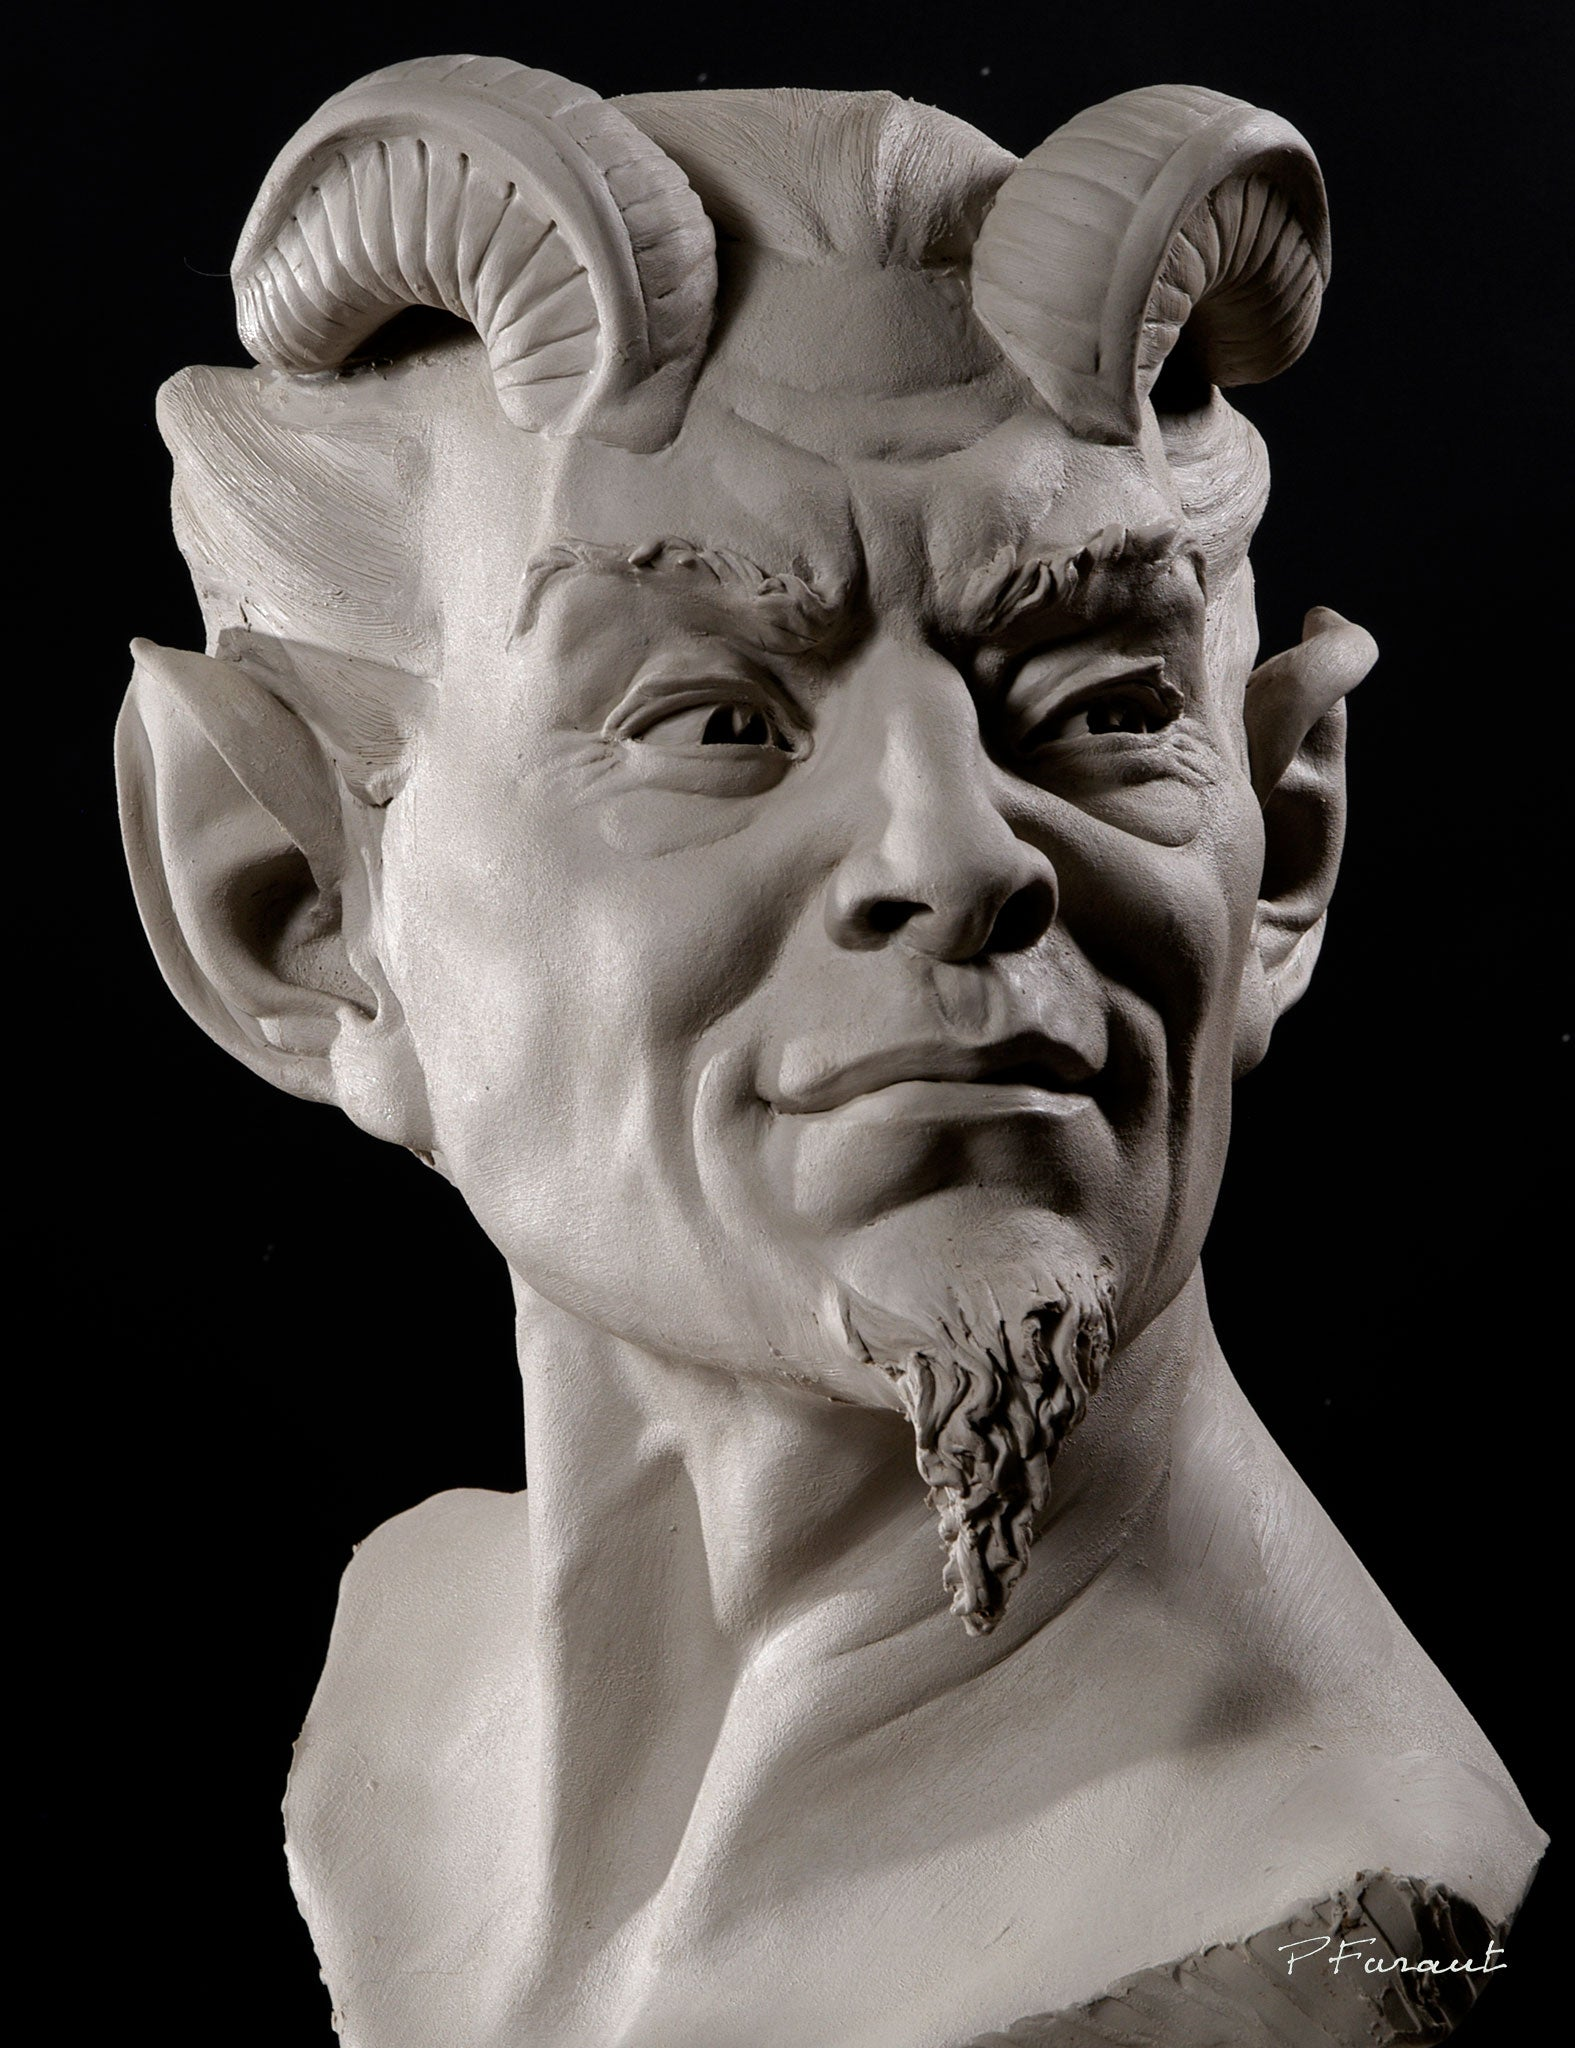 Mephistopheles demon clay portrait sculpture by Philippe Faraut